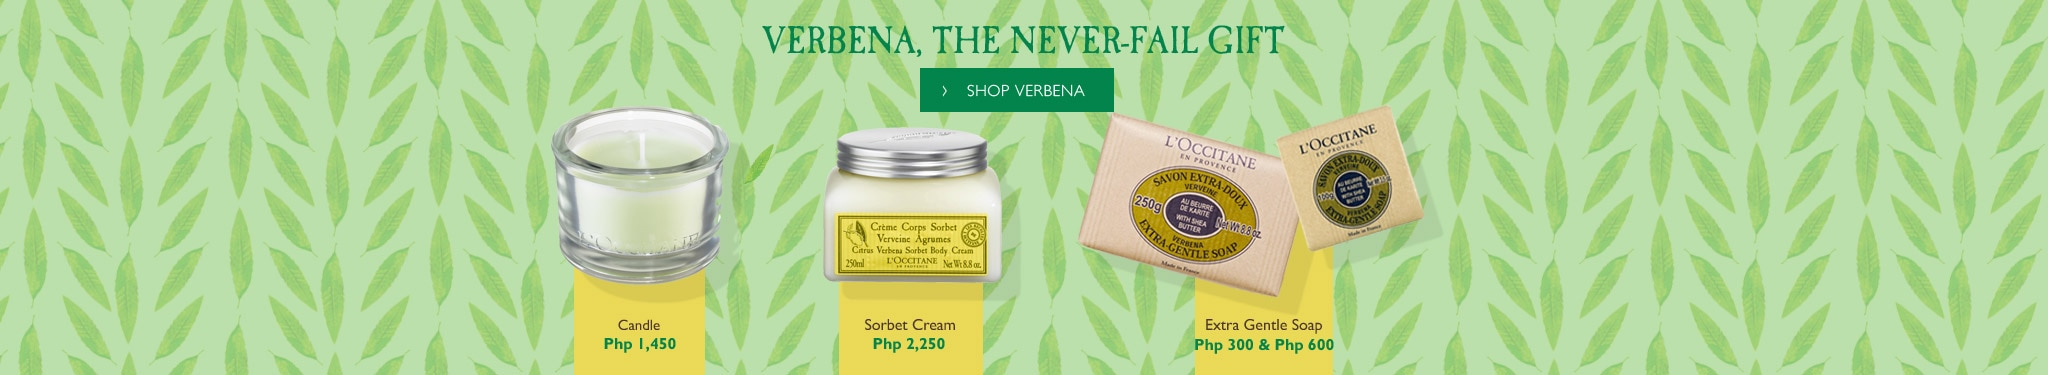 VERBENA, THE NEVER-FAIL GIFT